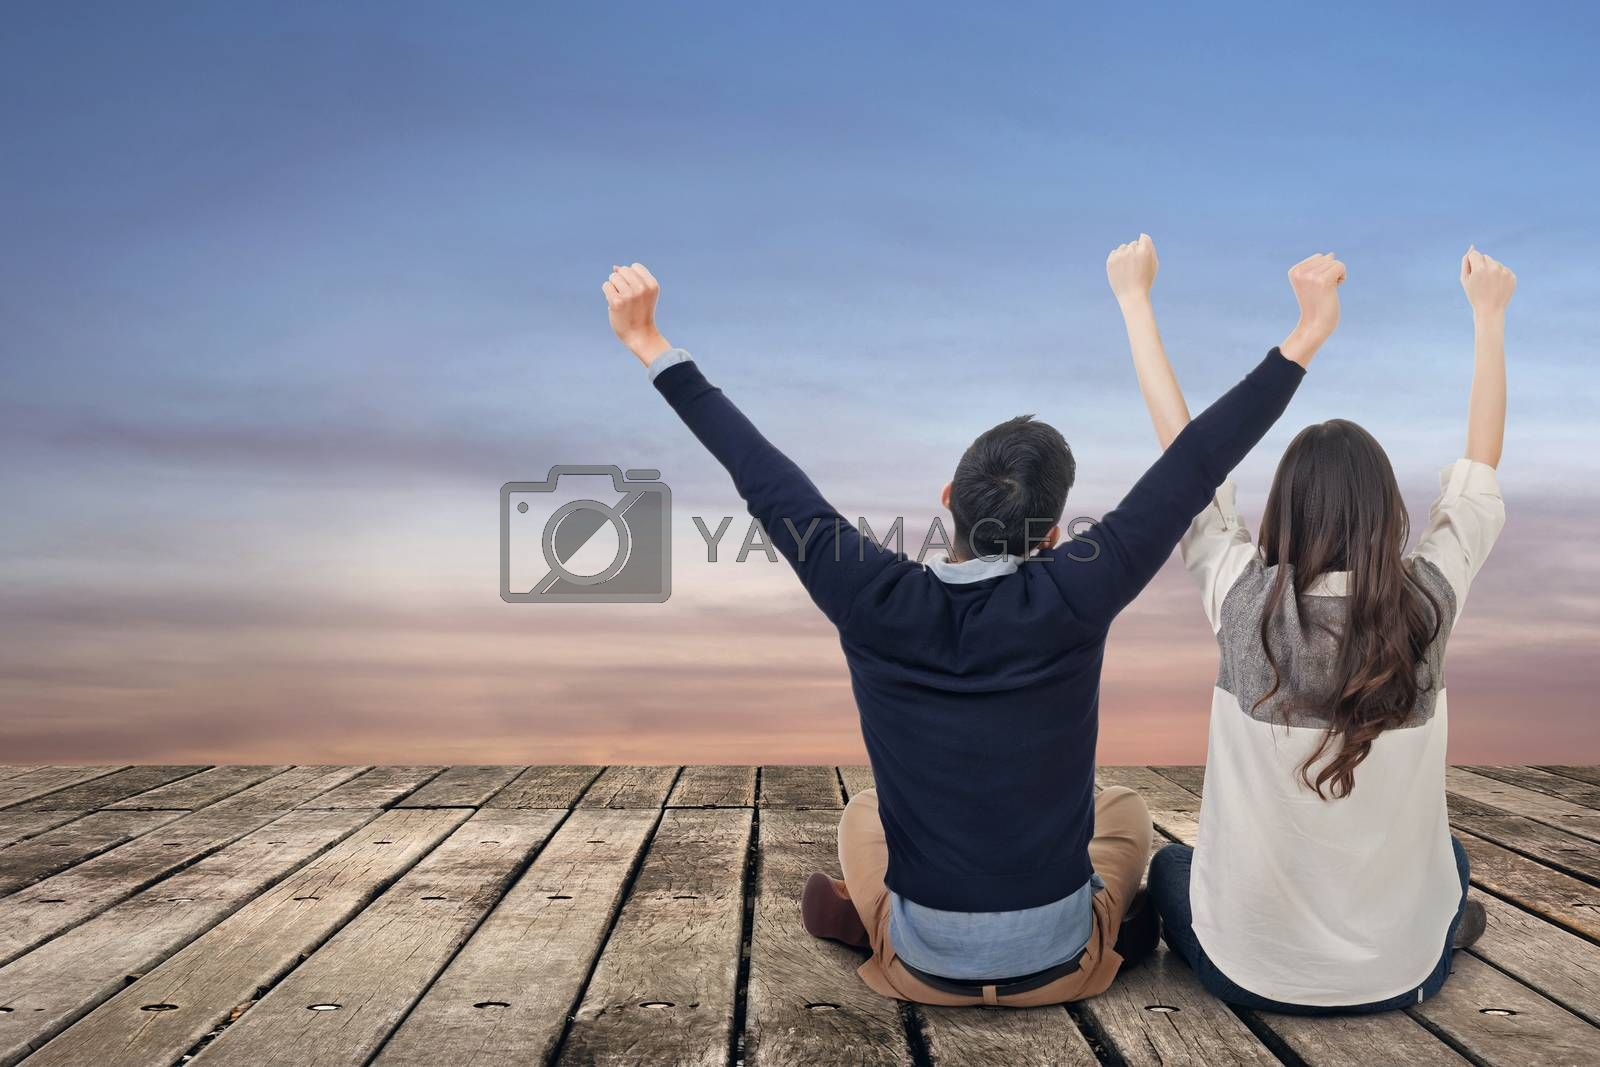 Royalty free image of exciting or freedom by elwynn